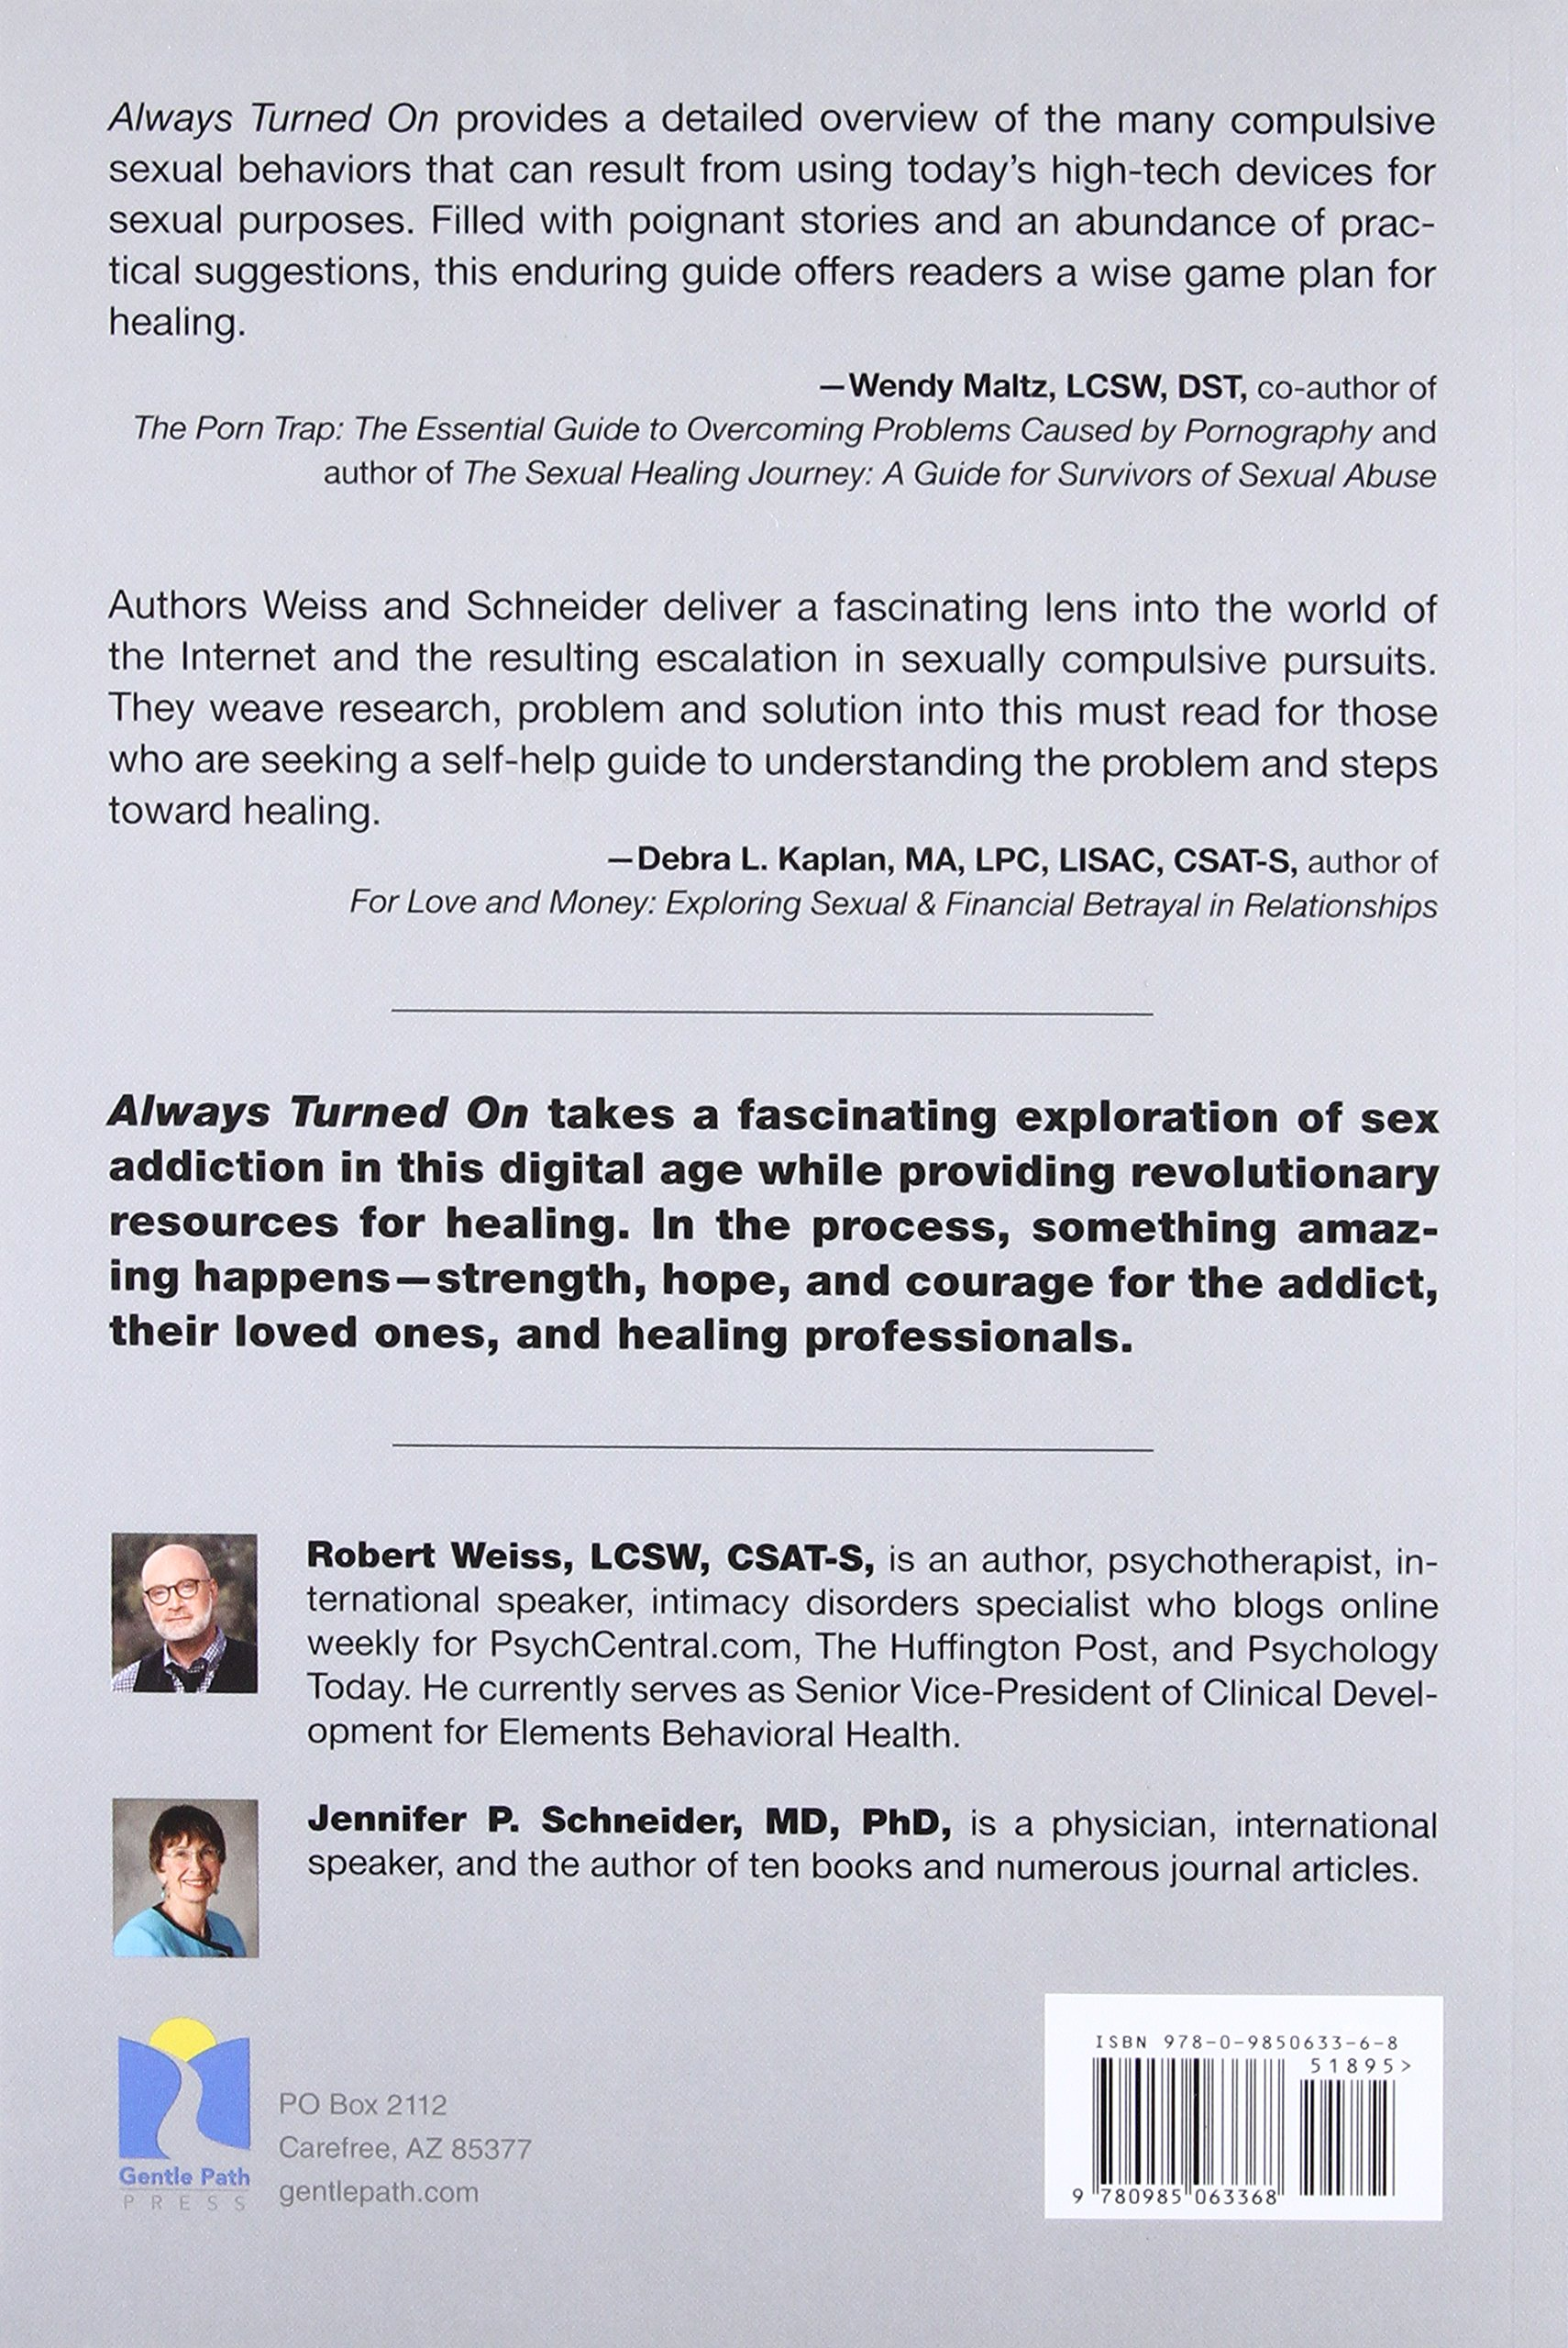 Always Turned On: Sex Addiction in the Digital Age: Robert Weiss, Jennifer  P. Schneider: 9780985063368: Amazon.com: Books